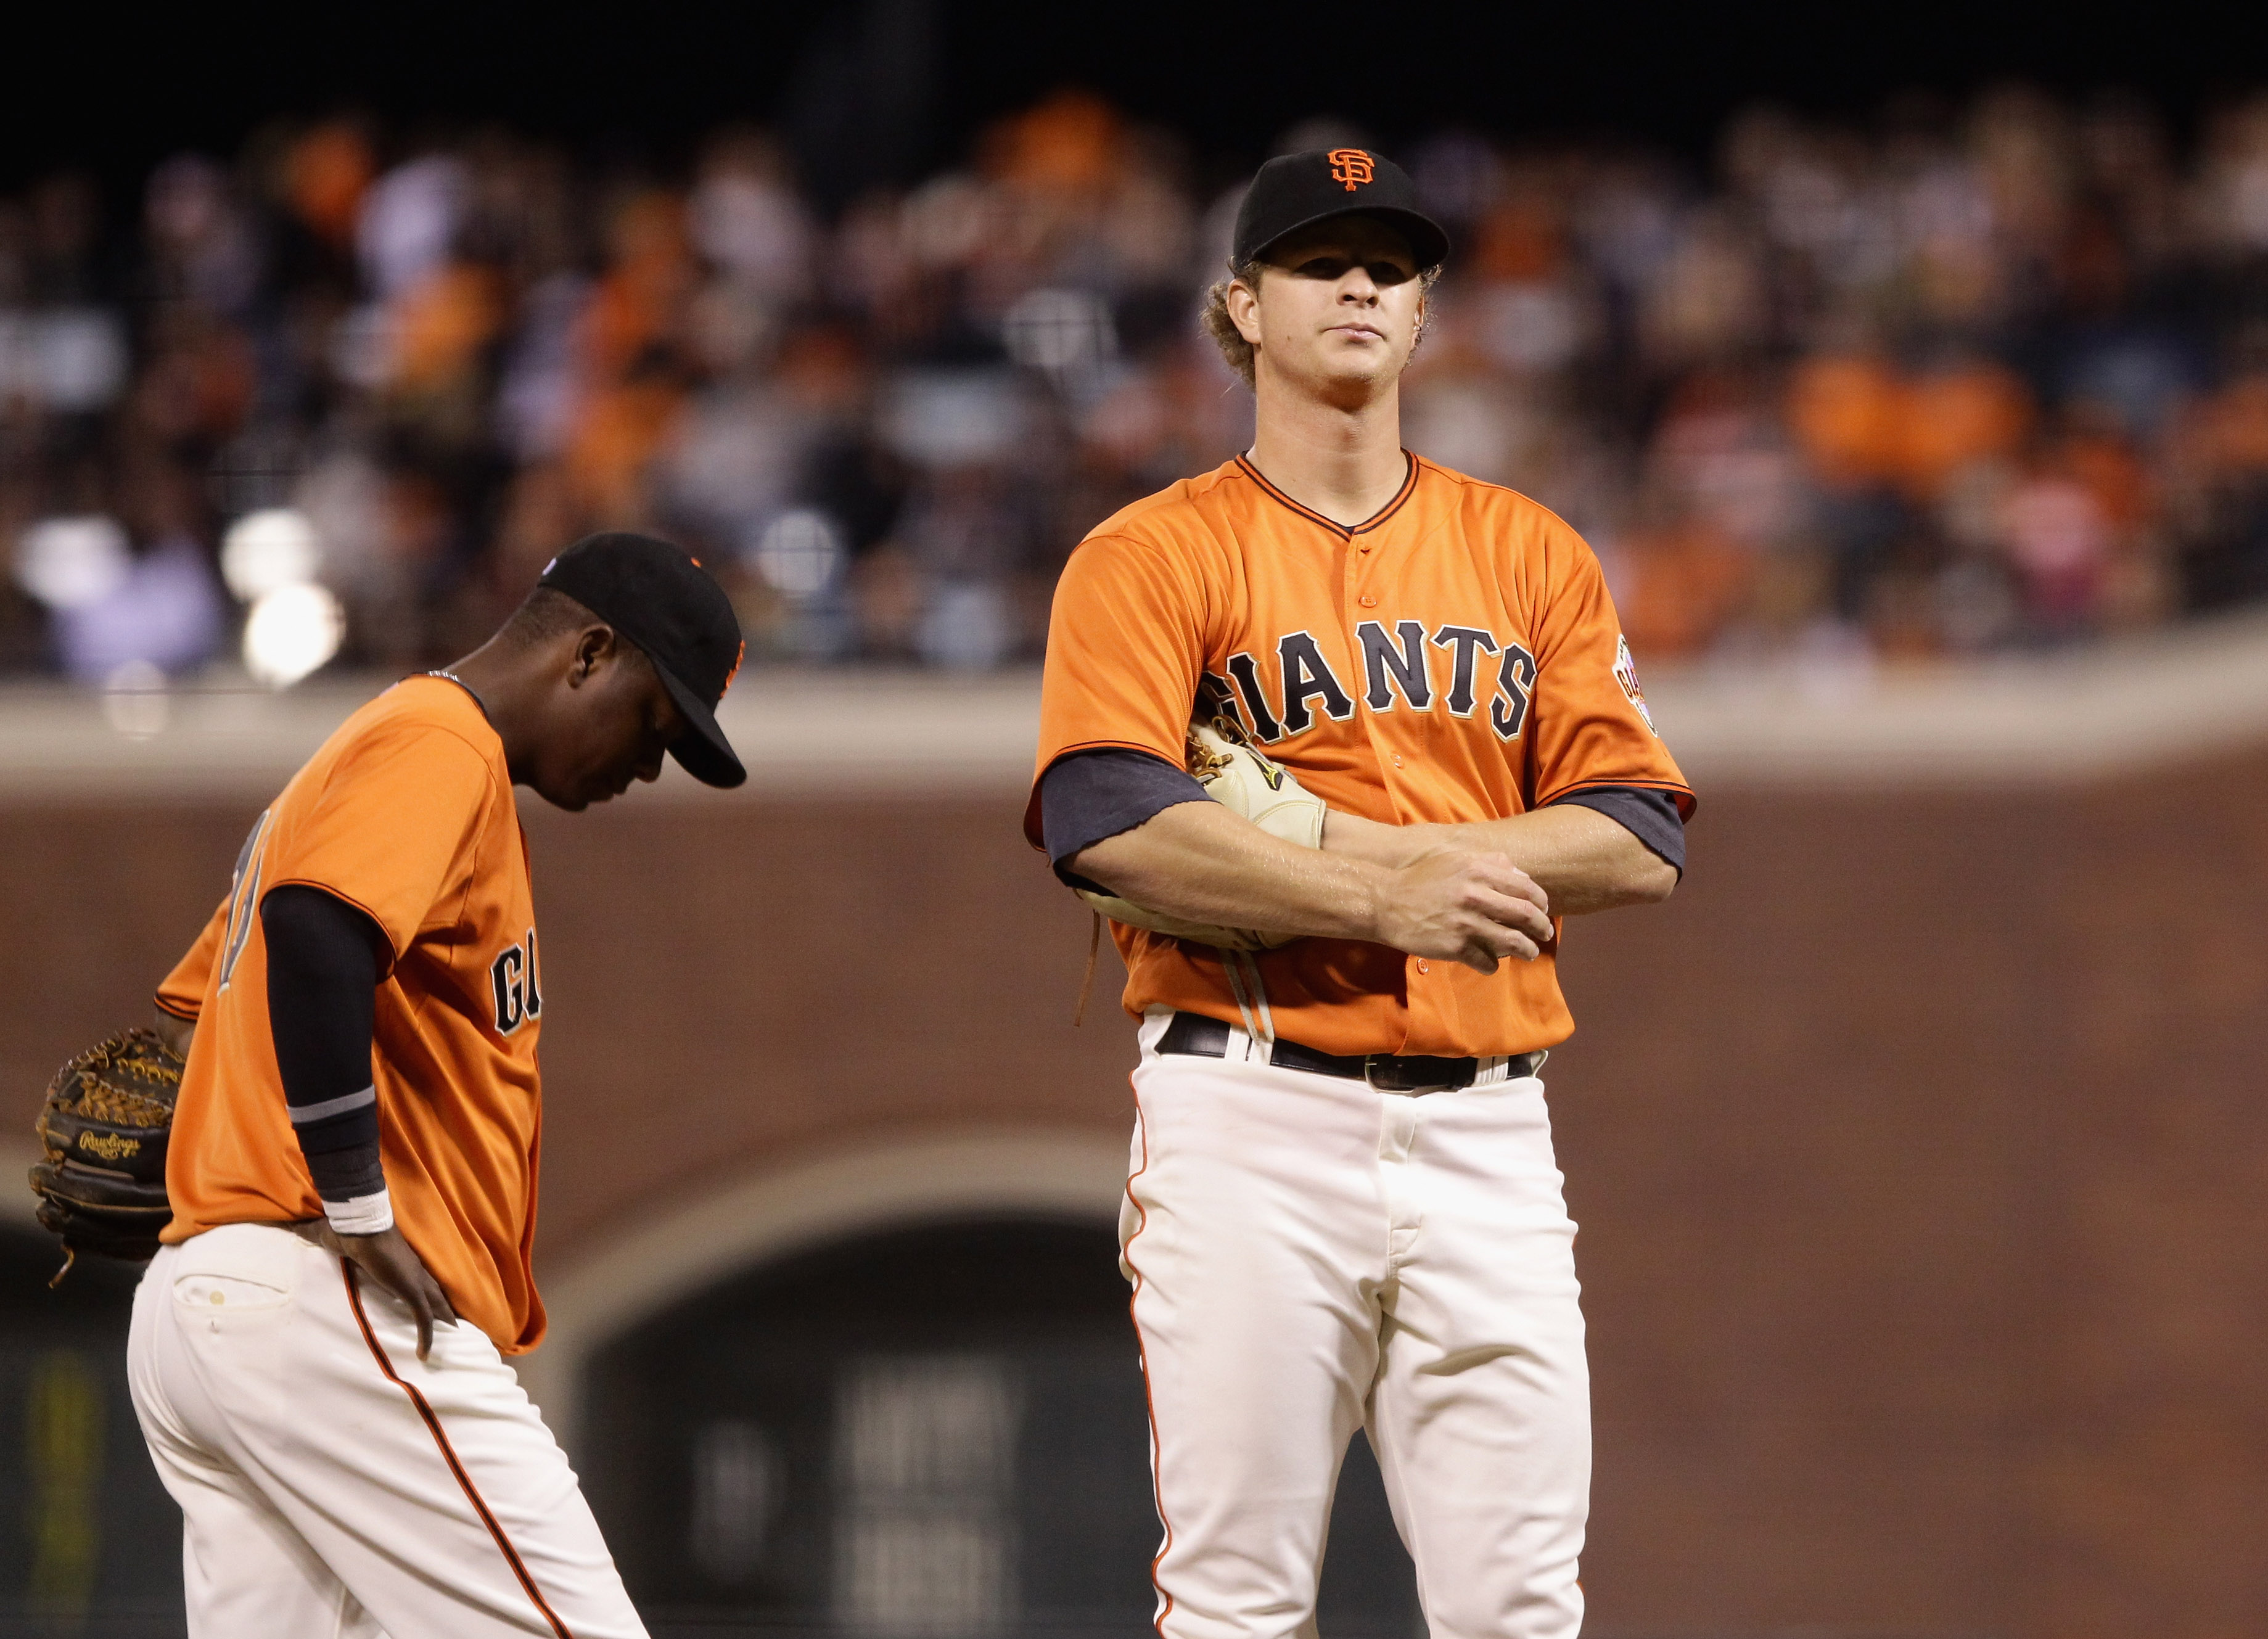 SAN FRANCISCO - OCTOBER 01:  Matt Cain #18 and Edgar Renteria #16 of the San Francisco Giants wait for manager Bruce Bochy to come to the mound to take Cain out of their game against the San Diego Padres in the fifth inning at AT&T Park on October 1, 2010